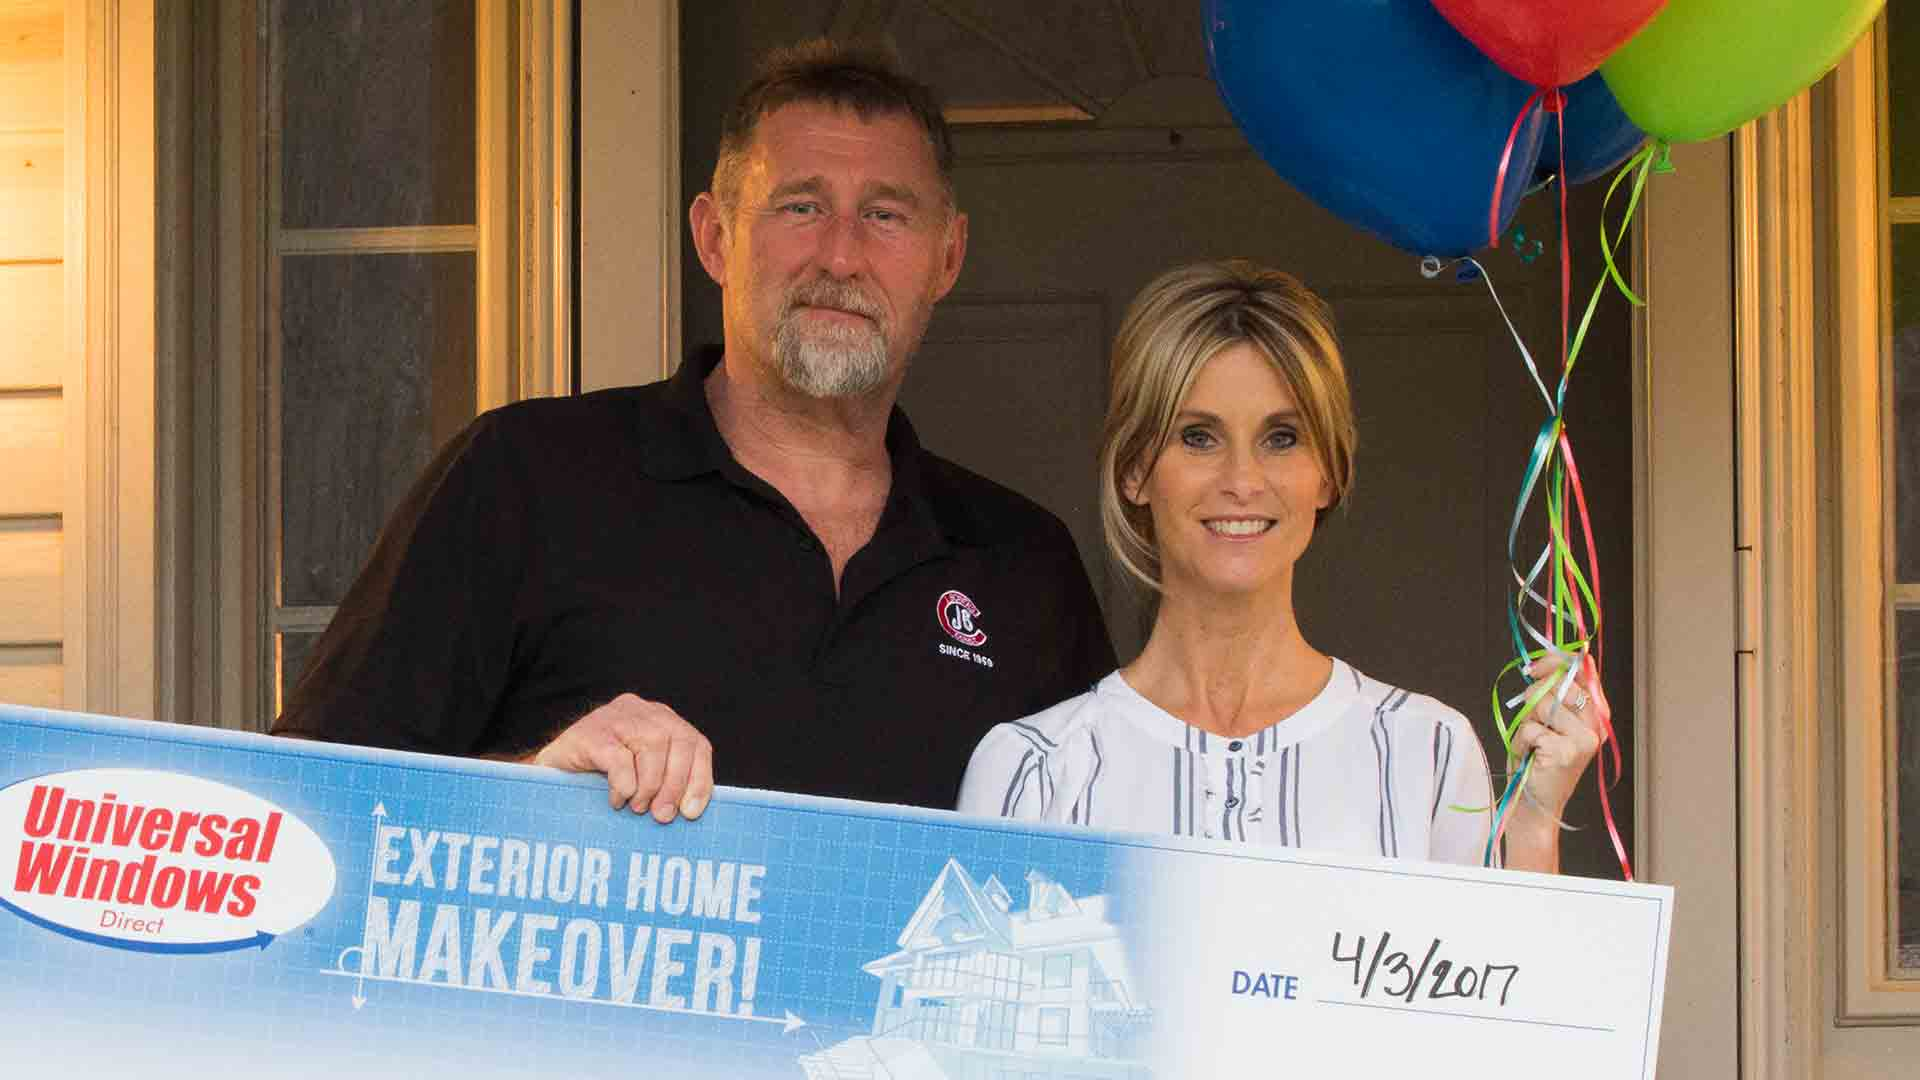 Home Improvement Sweepstakes Winners